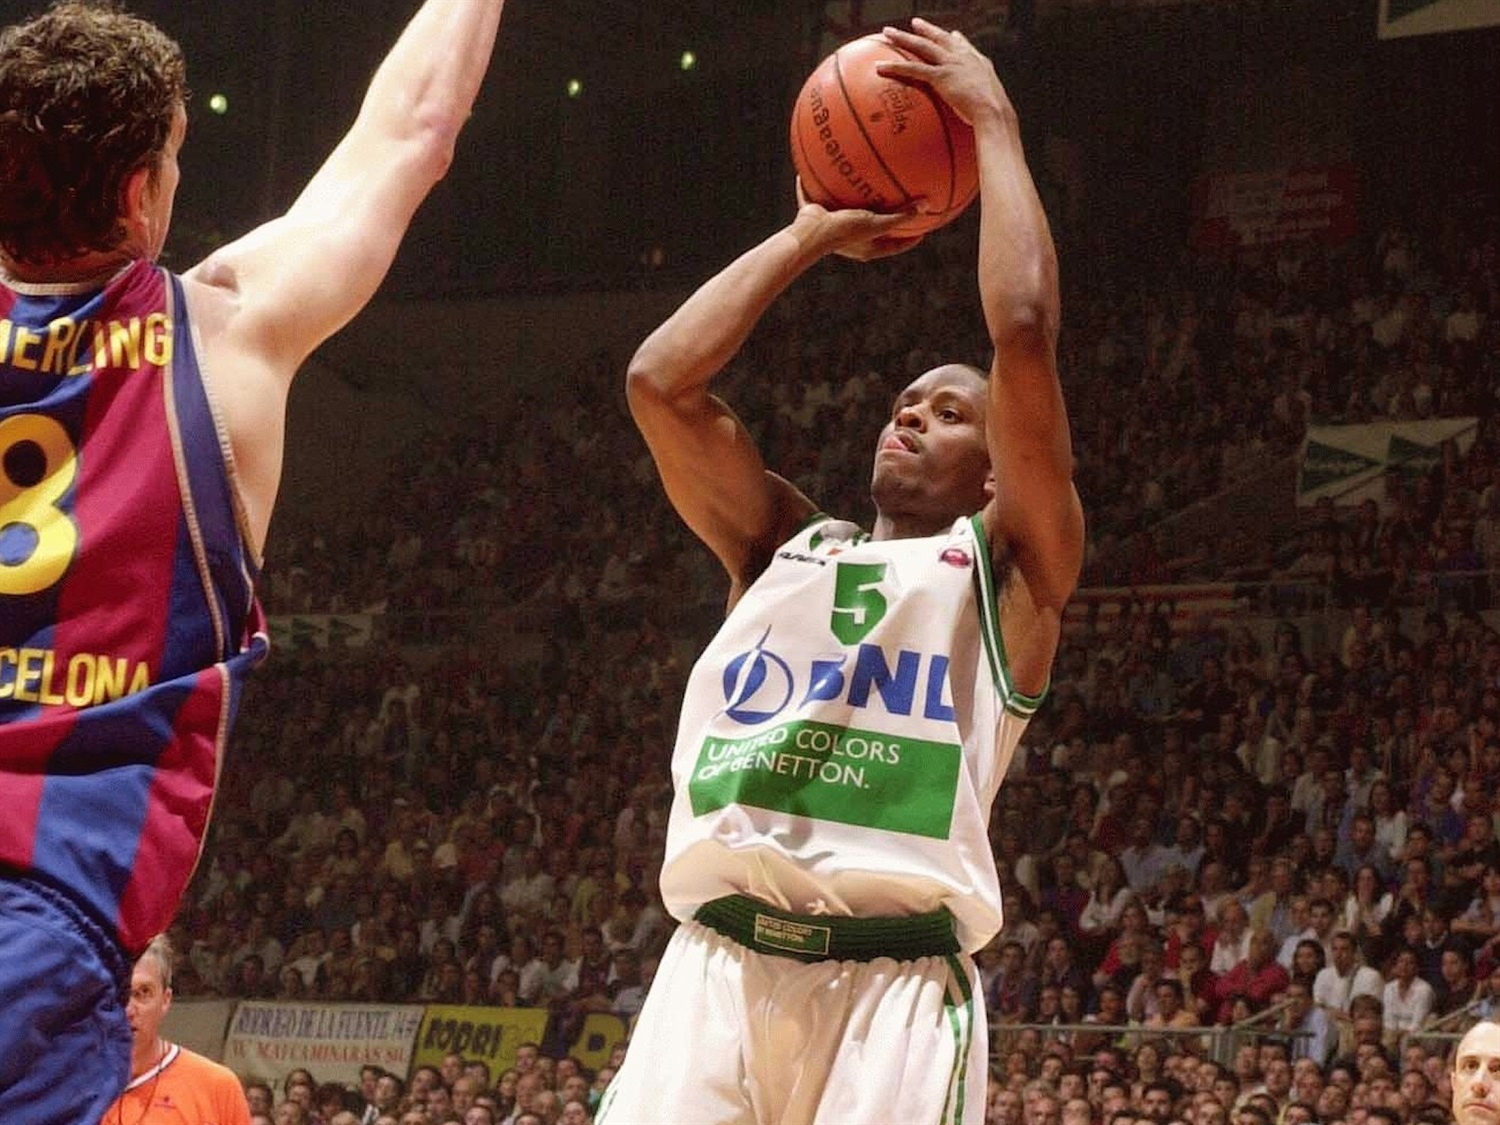 Tyus Edney - Benetton Basket - Final Four Barcelona 2003 - EB02